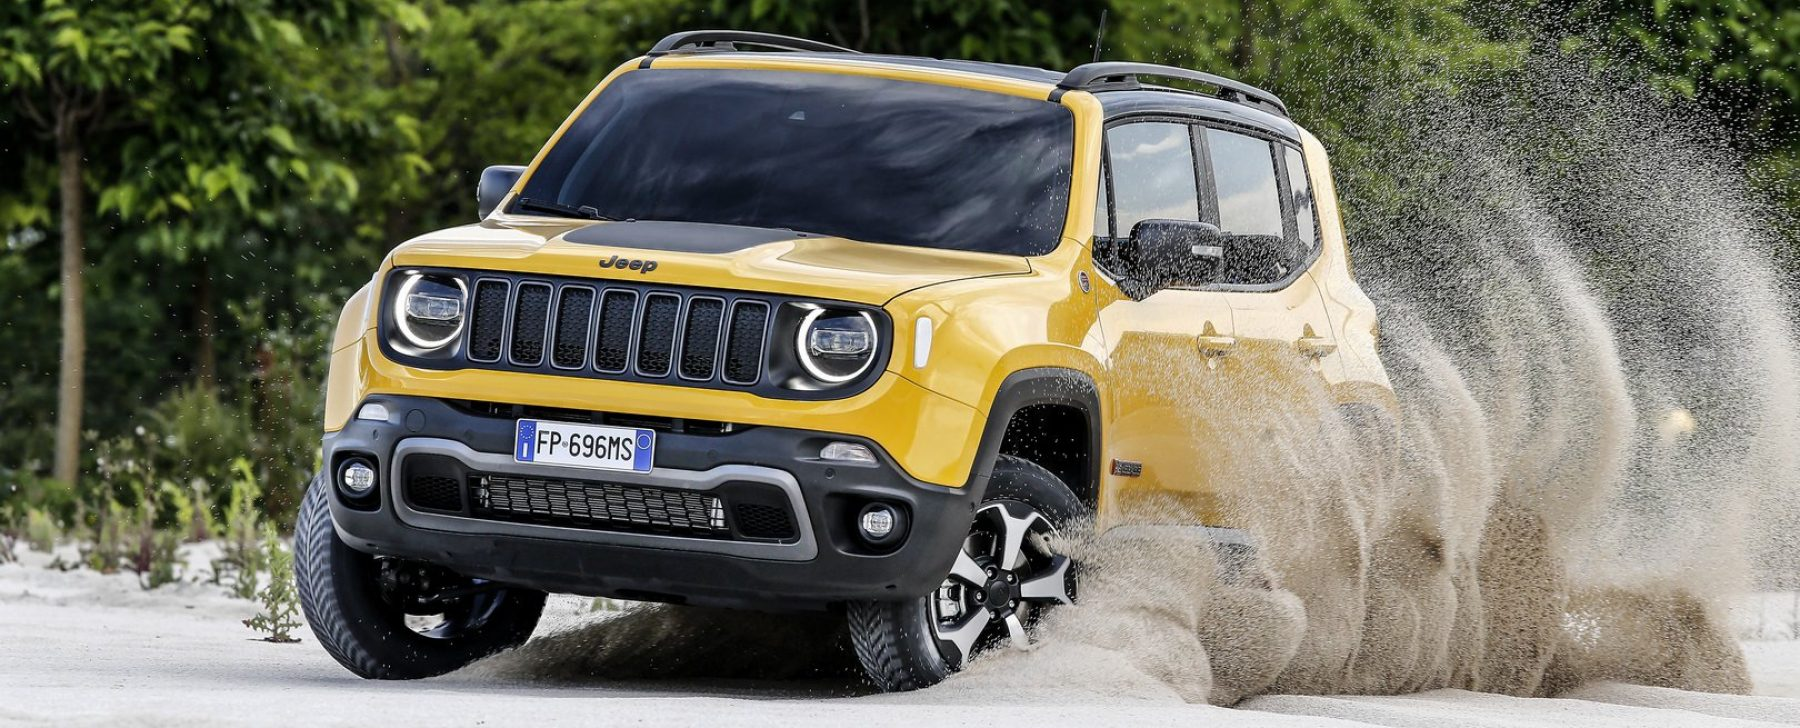 Jeep Renegade híbrido enchufable